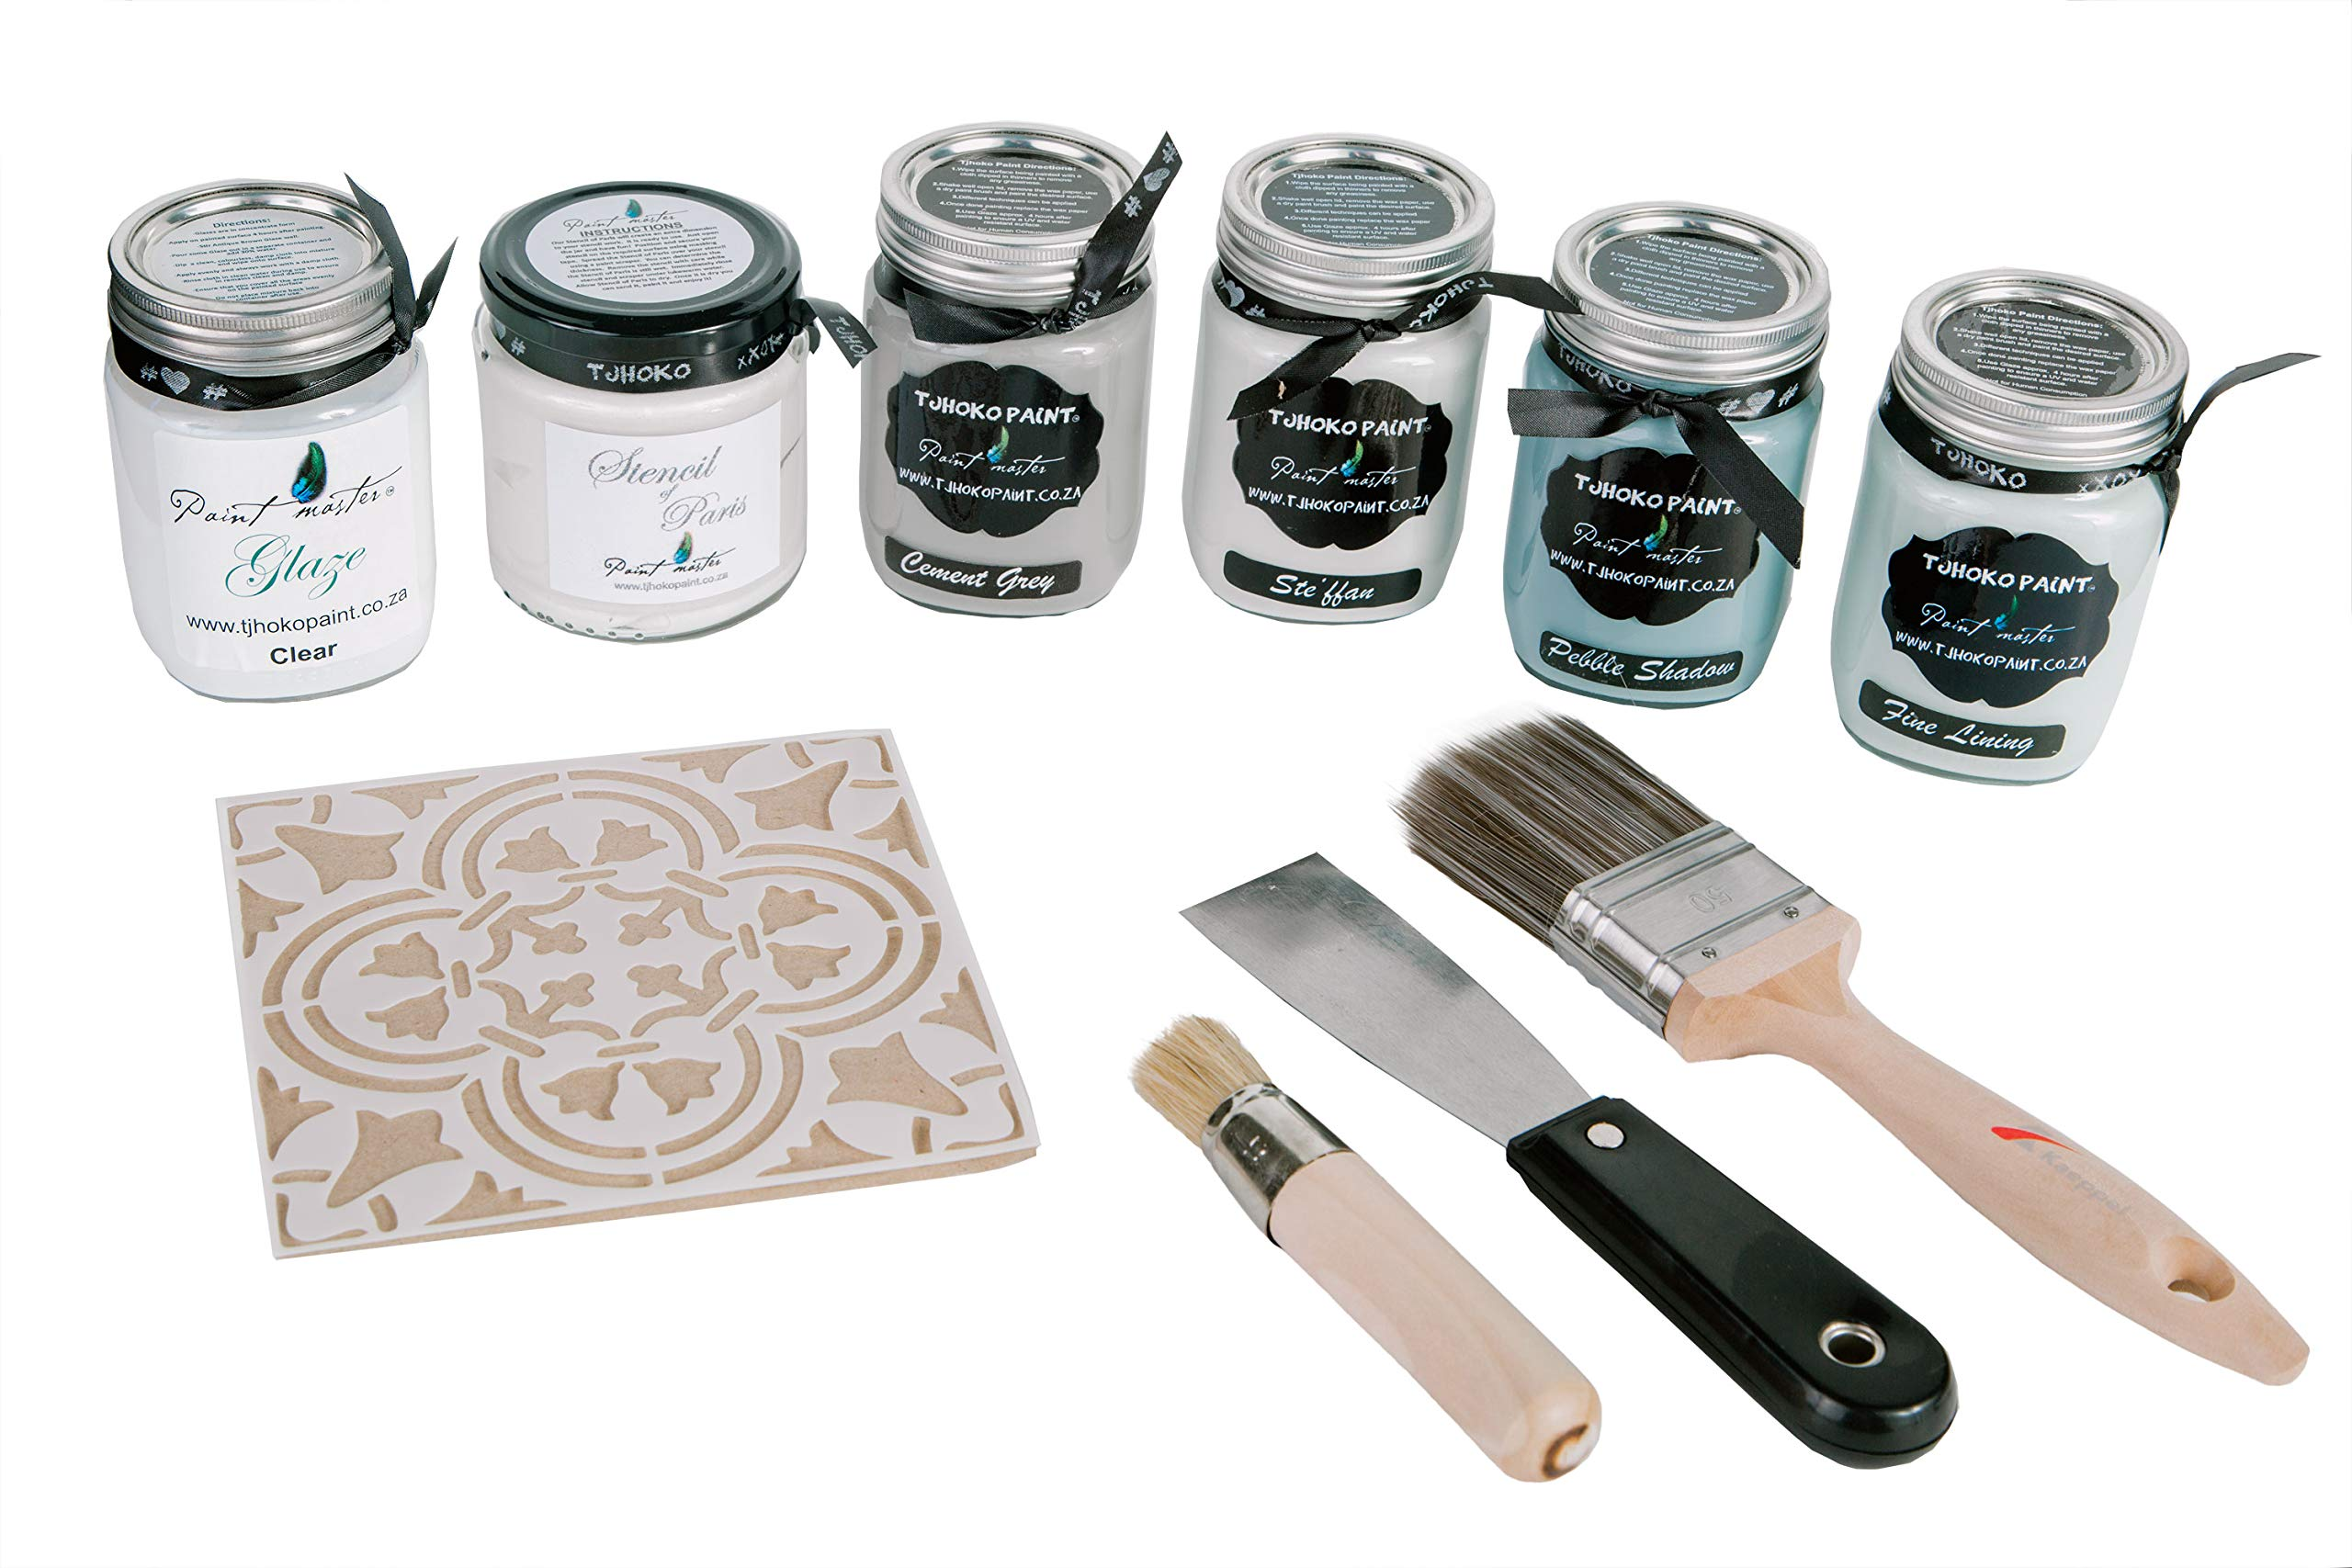 Tjhoko Paint's Deco Art Chalk Paint Kit, No Voc Paint for Chalk Couture and DIY Indoor & Outdoor Furniture, Multi Colors by Tjhoko Paint